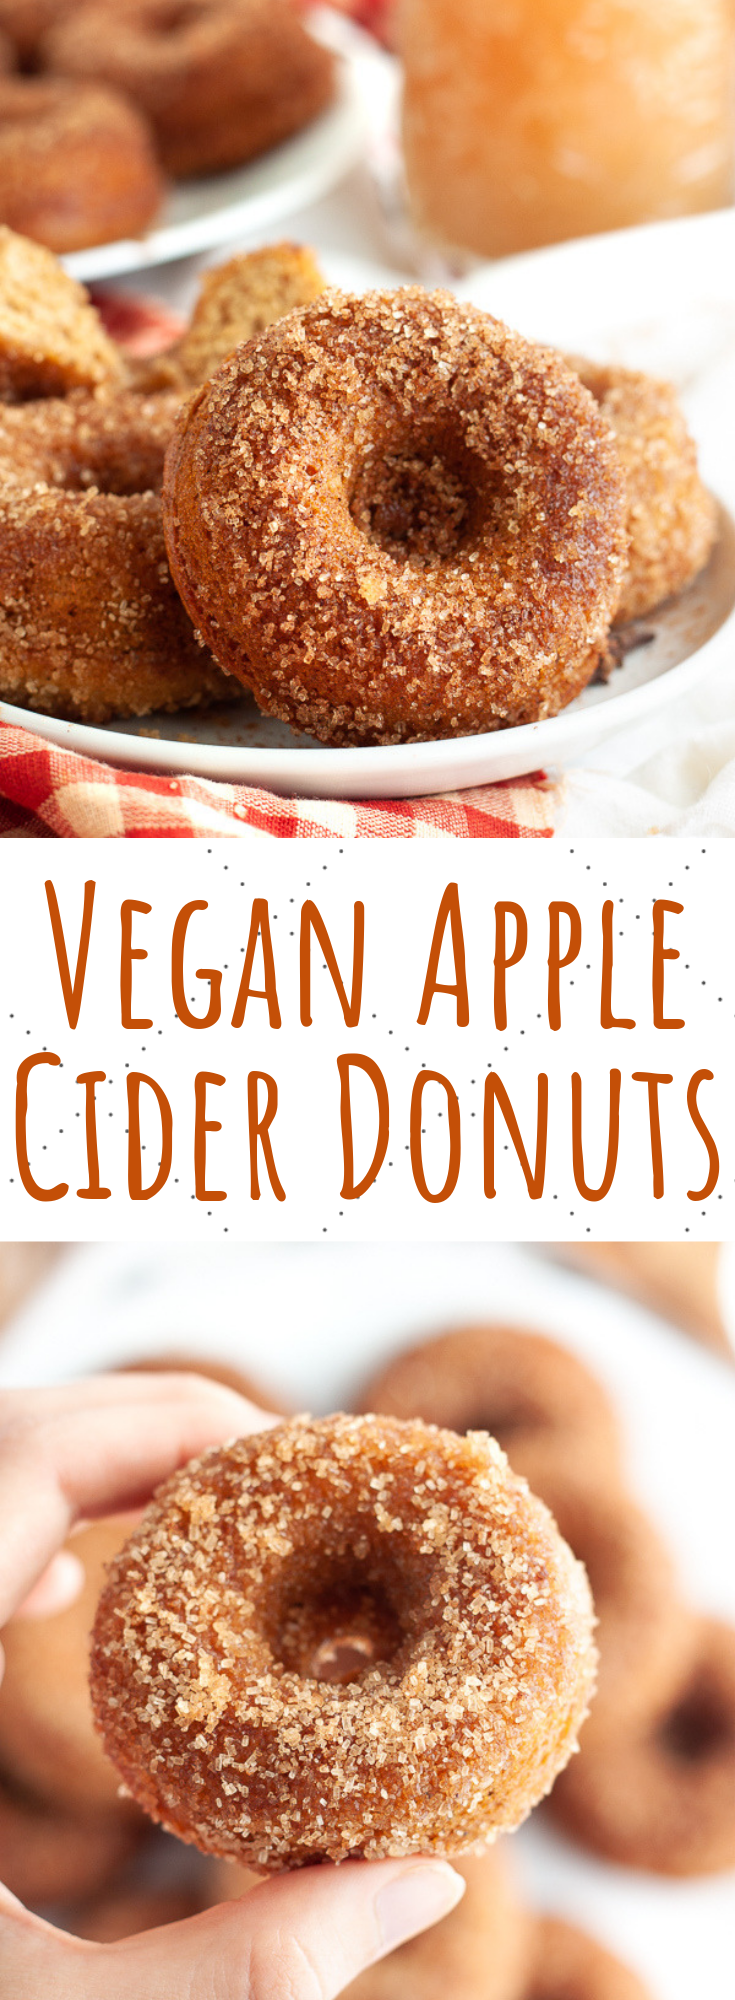 Vegan Apple Cider Donuts These yummy moist vegan apple cider donuts are easy to make and full of cinnamon, nutmeg and cloves, then rolled in cinnamon sugar!